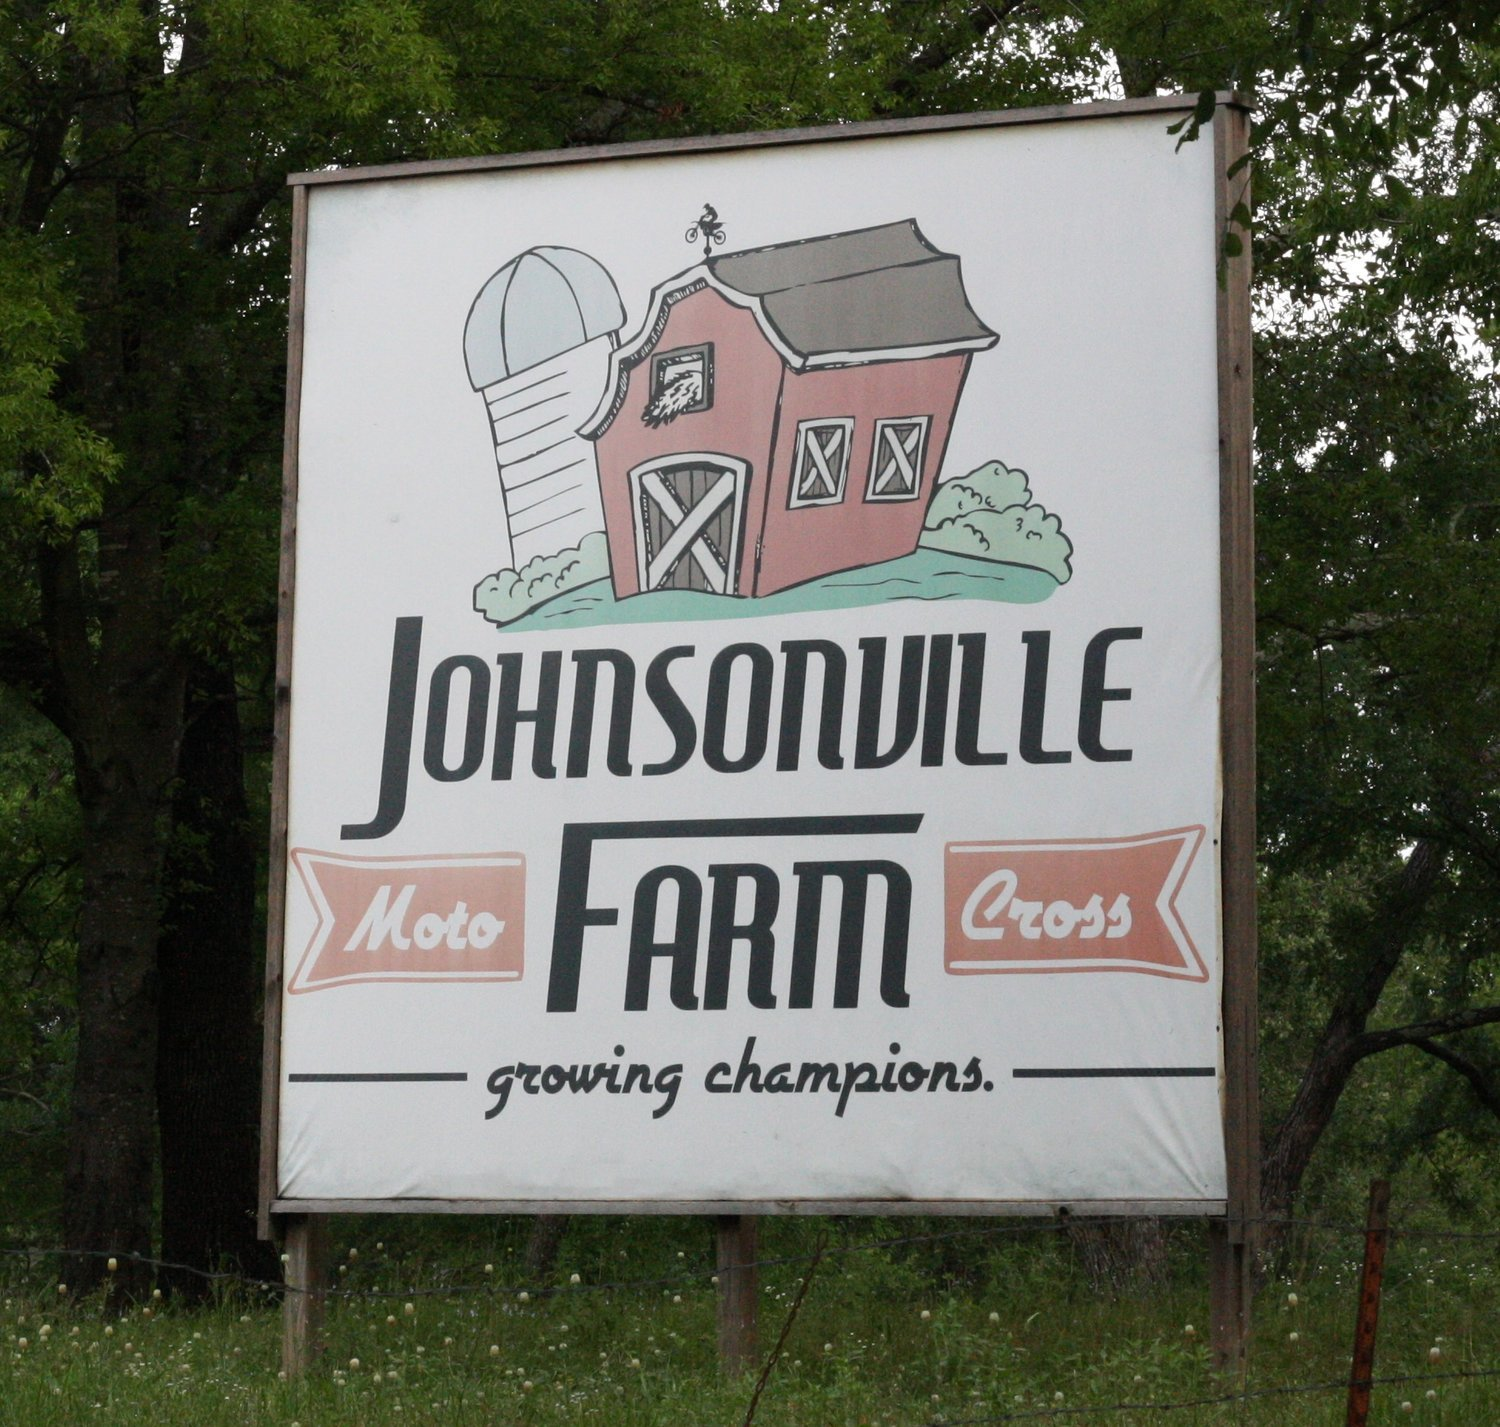 The Johnsonville Motocross Farm just south of Yantis hosts national level qualifying races.